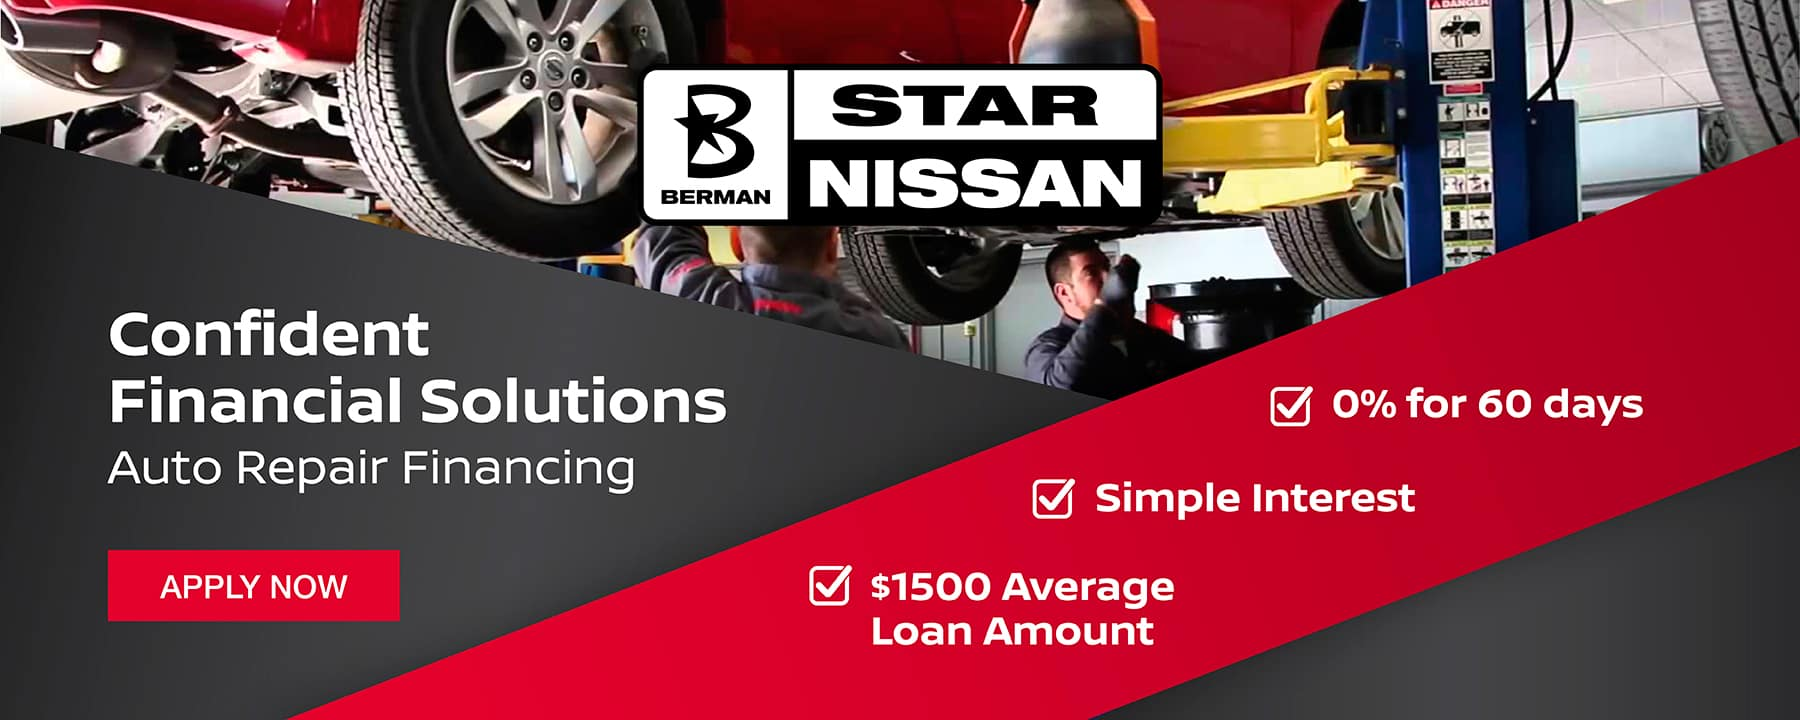 Service Financing is NOW available at Star Nissan!